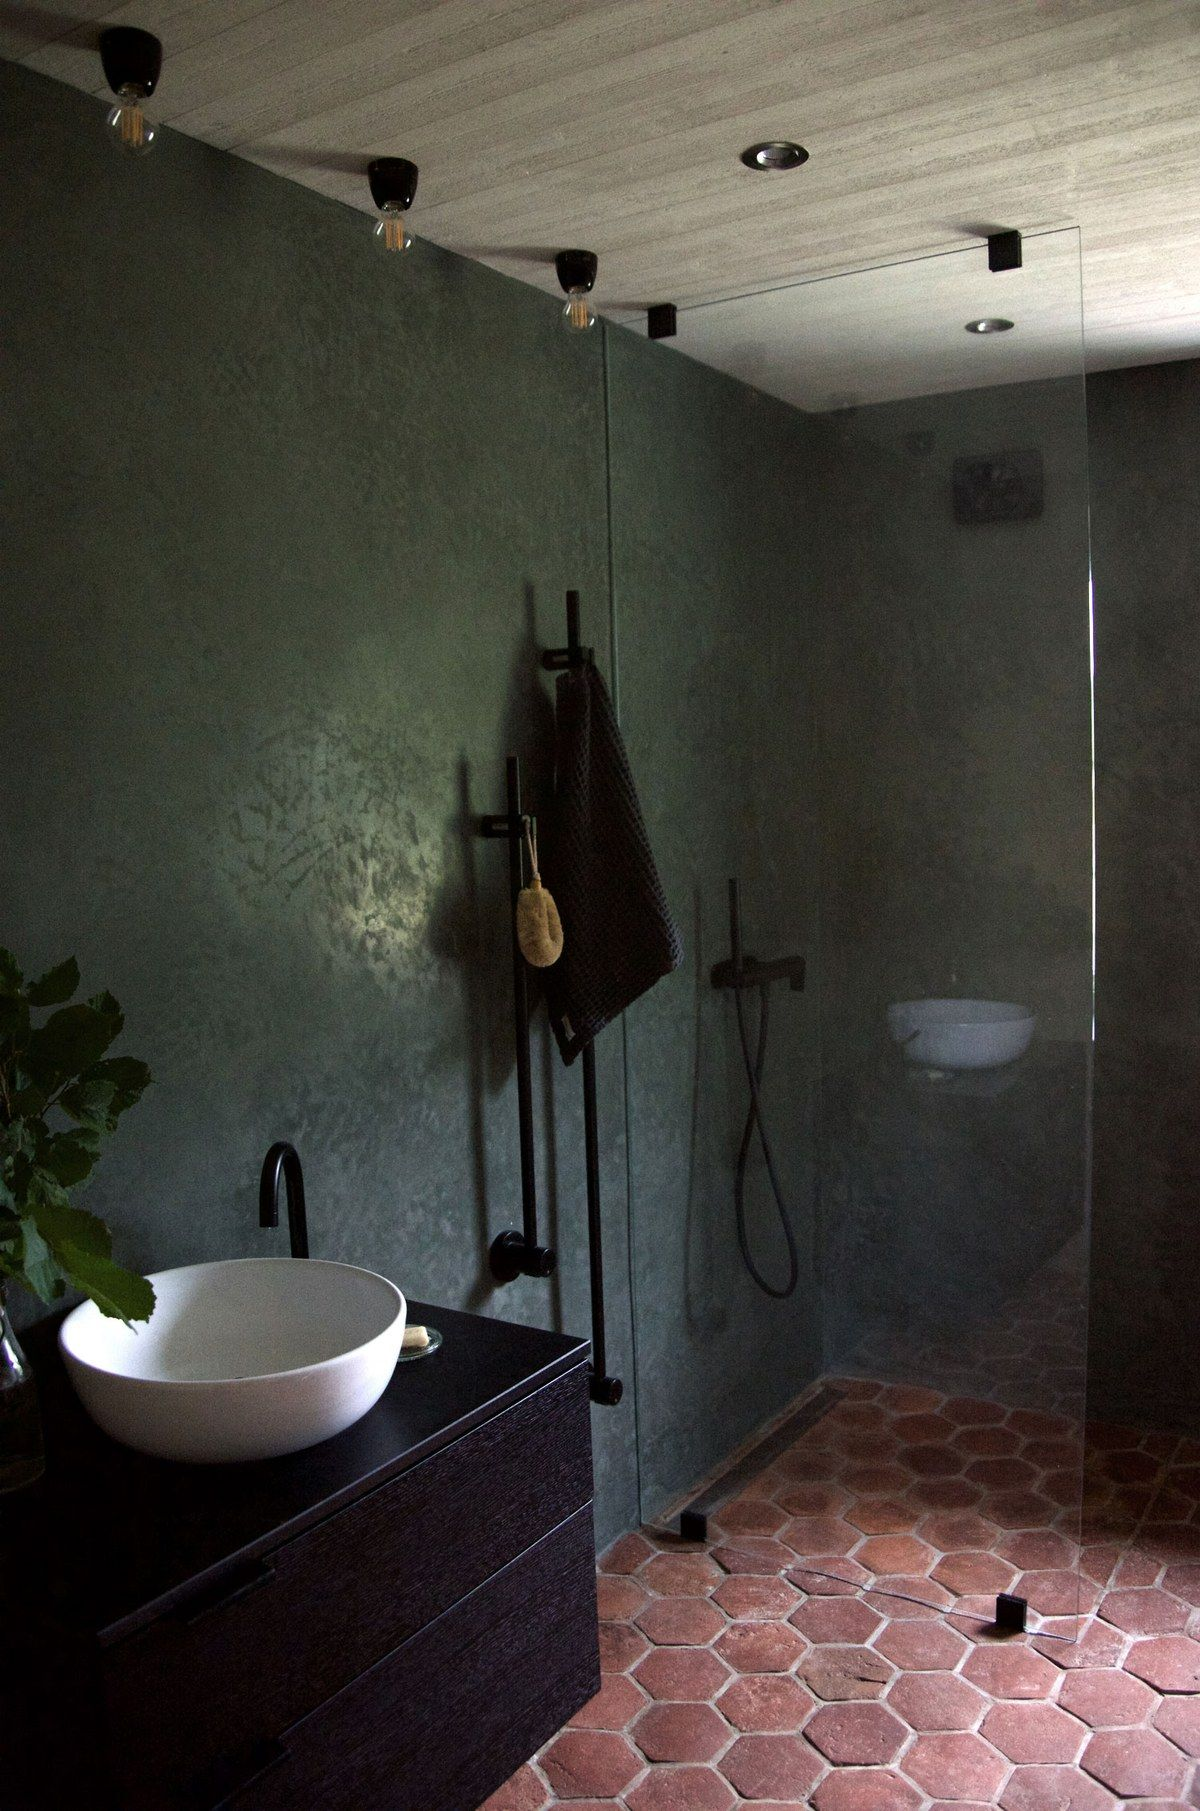 The 7 Green Building Techniques We Used To Design Our Dream Home Architectural Digest Green Bathroom Dark Green Walls Bathroom Interior